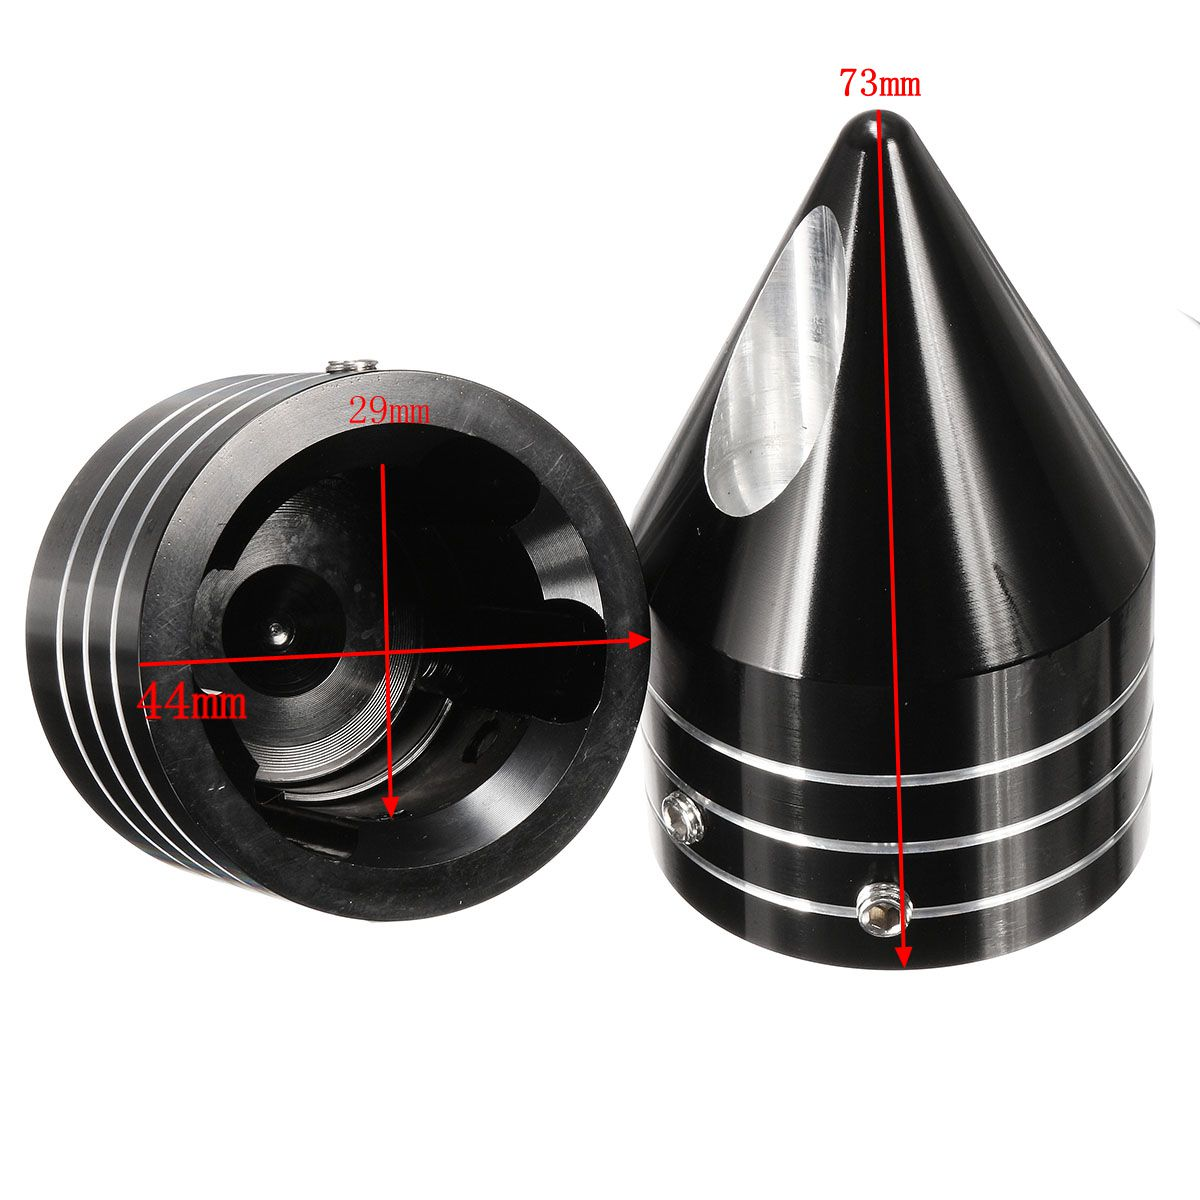 Motorcycle CNC Spike Front Axle Cap Nut Covers For Harley Dyna Touring Road King